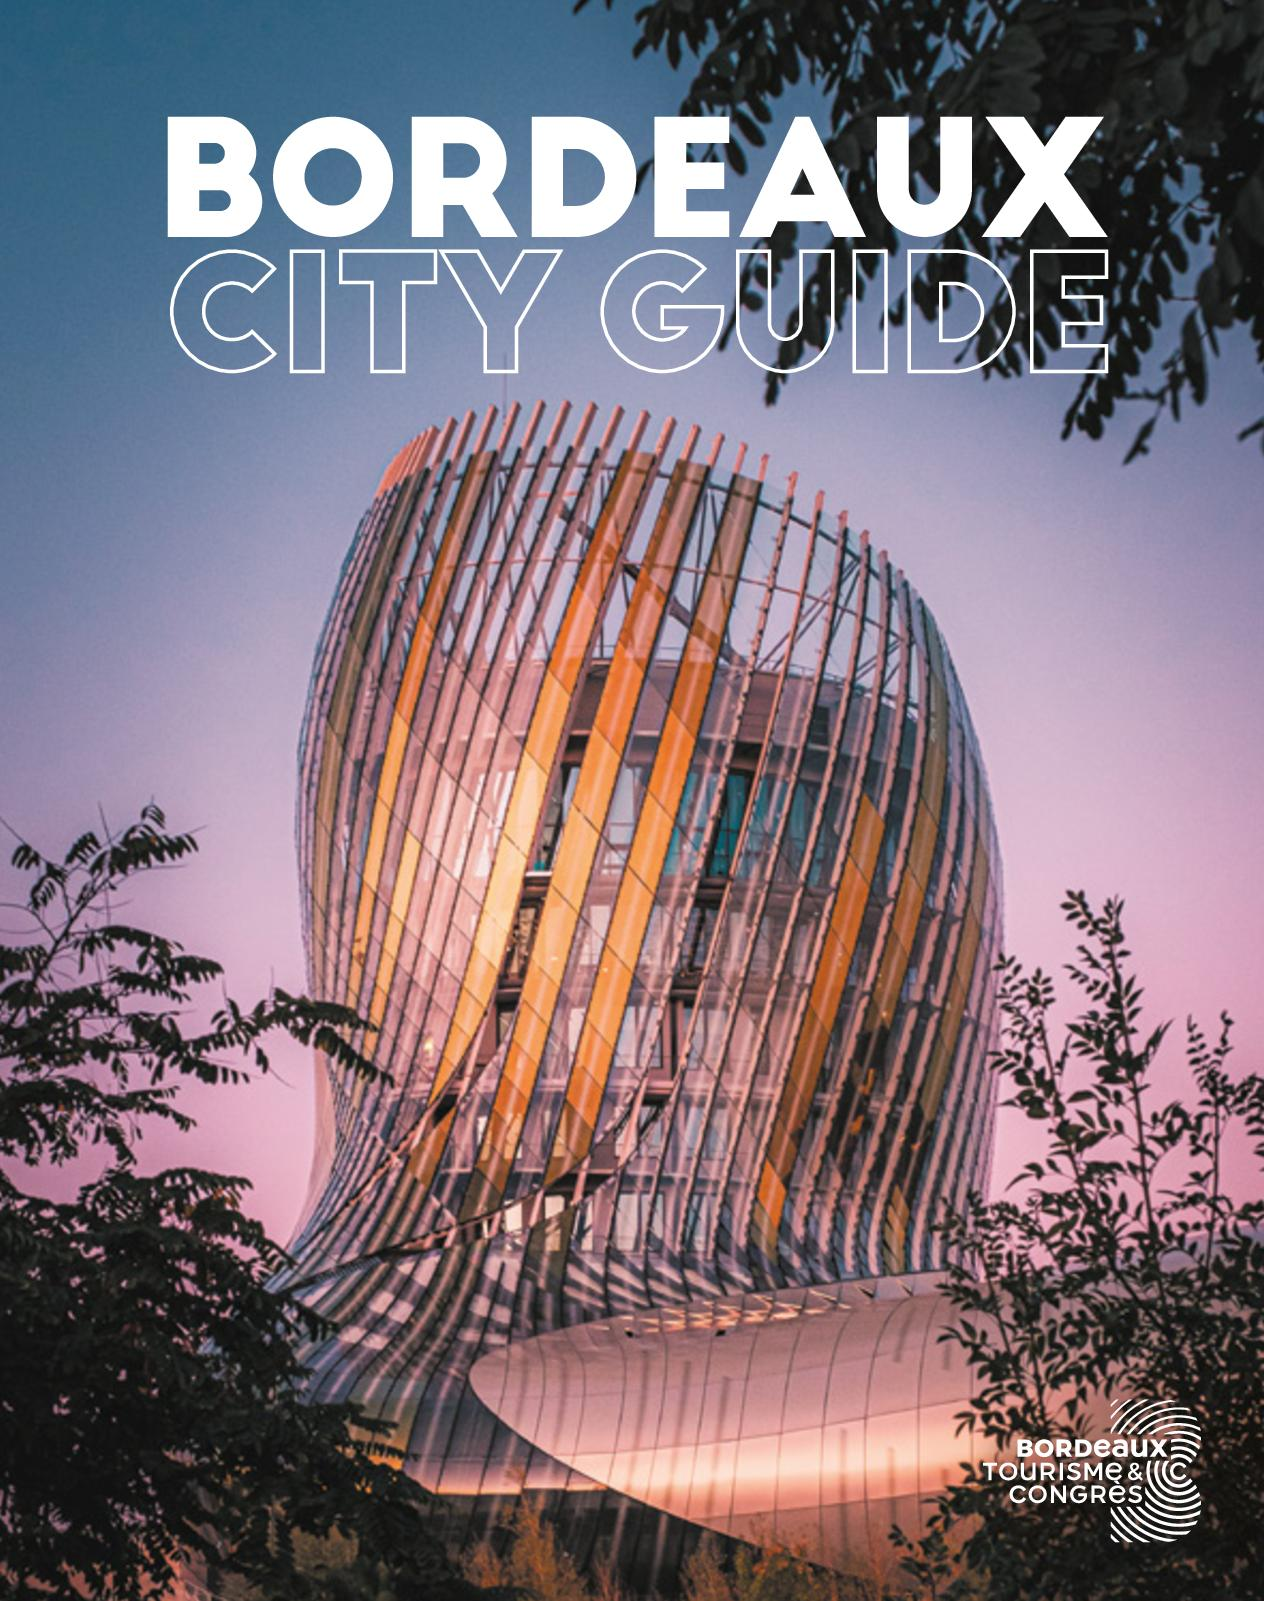 Construction Cave A Vin Sous Sol calaméo - bordeaux city guide 2020 uk